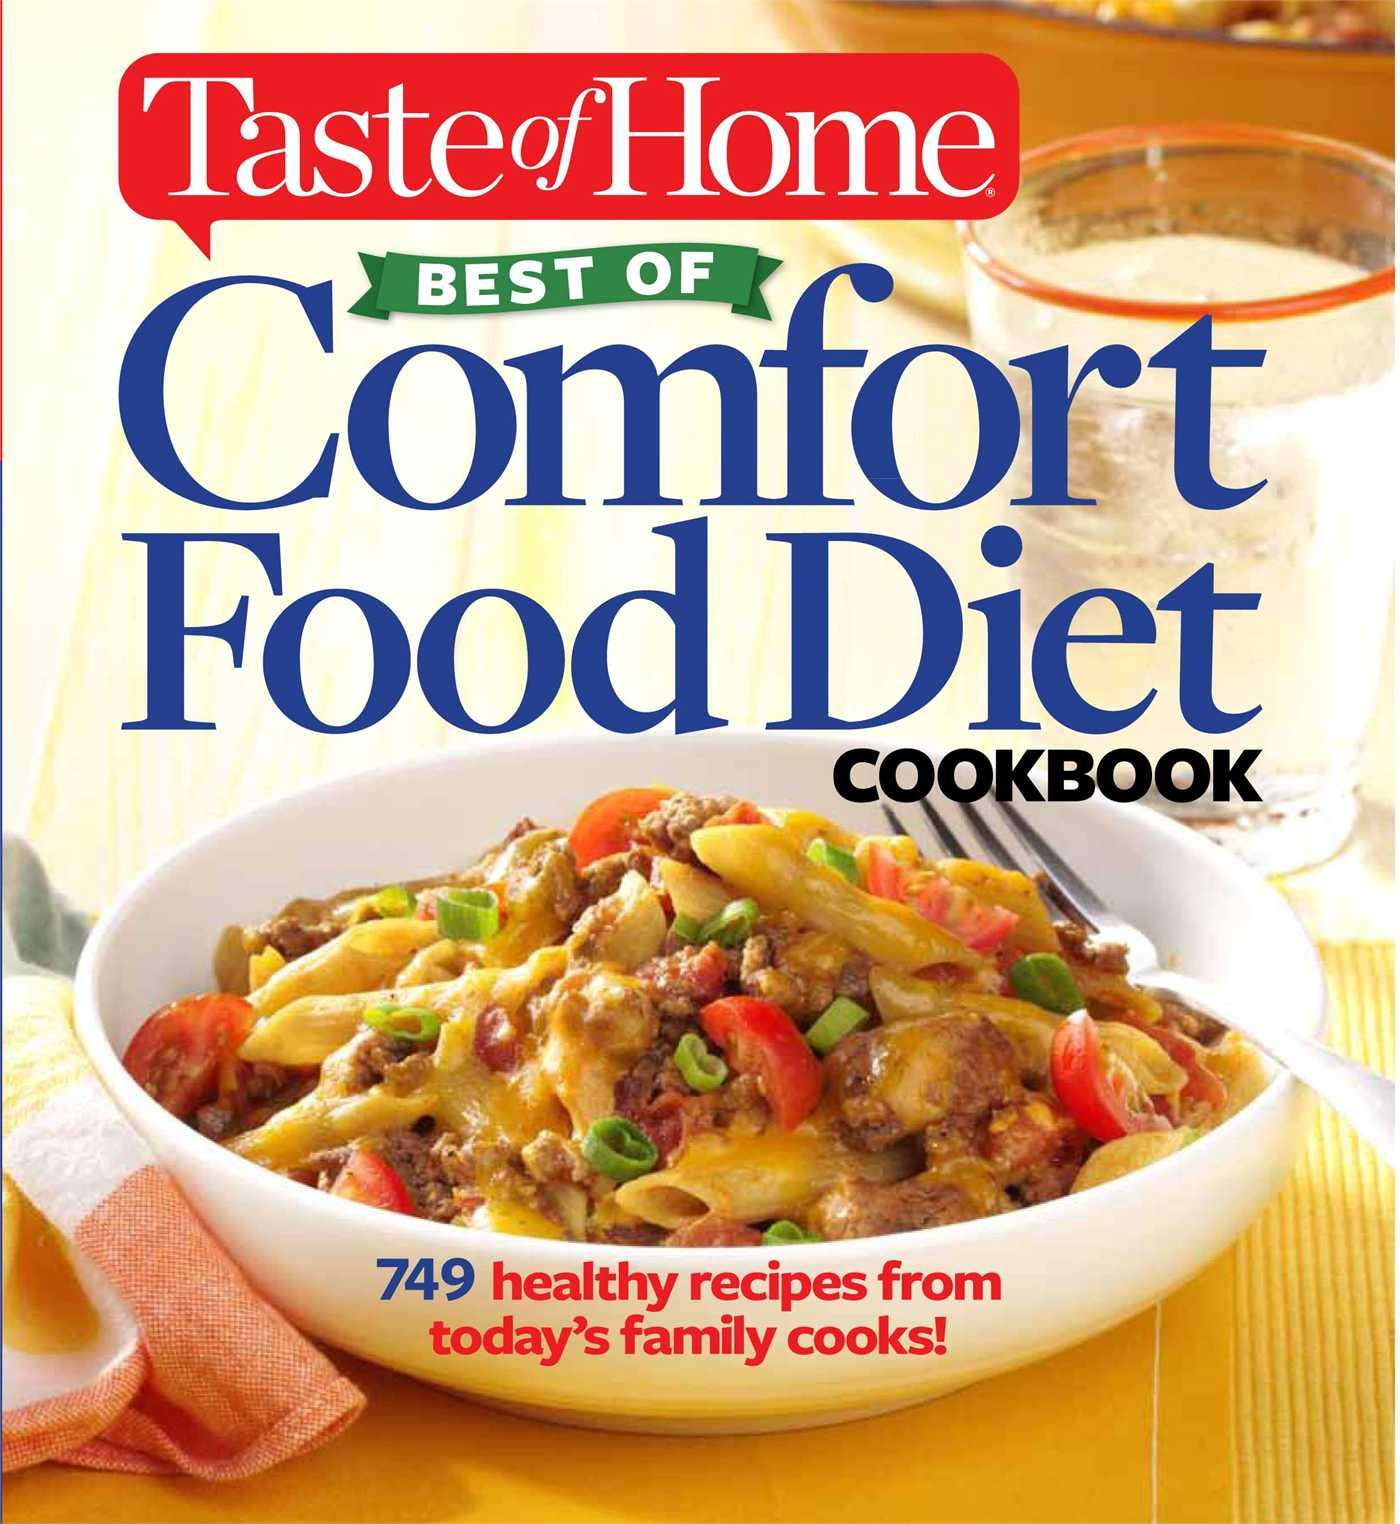 Taste of home best of comfort food diet cookbook lose weight with taste of home best of comfort food diet cookbook lose weight with 749 recipes from todays family cooks taste of home 9781617652349 amazon books forumfinder Image collections